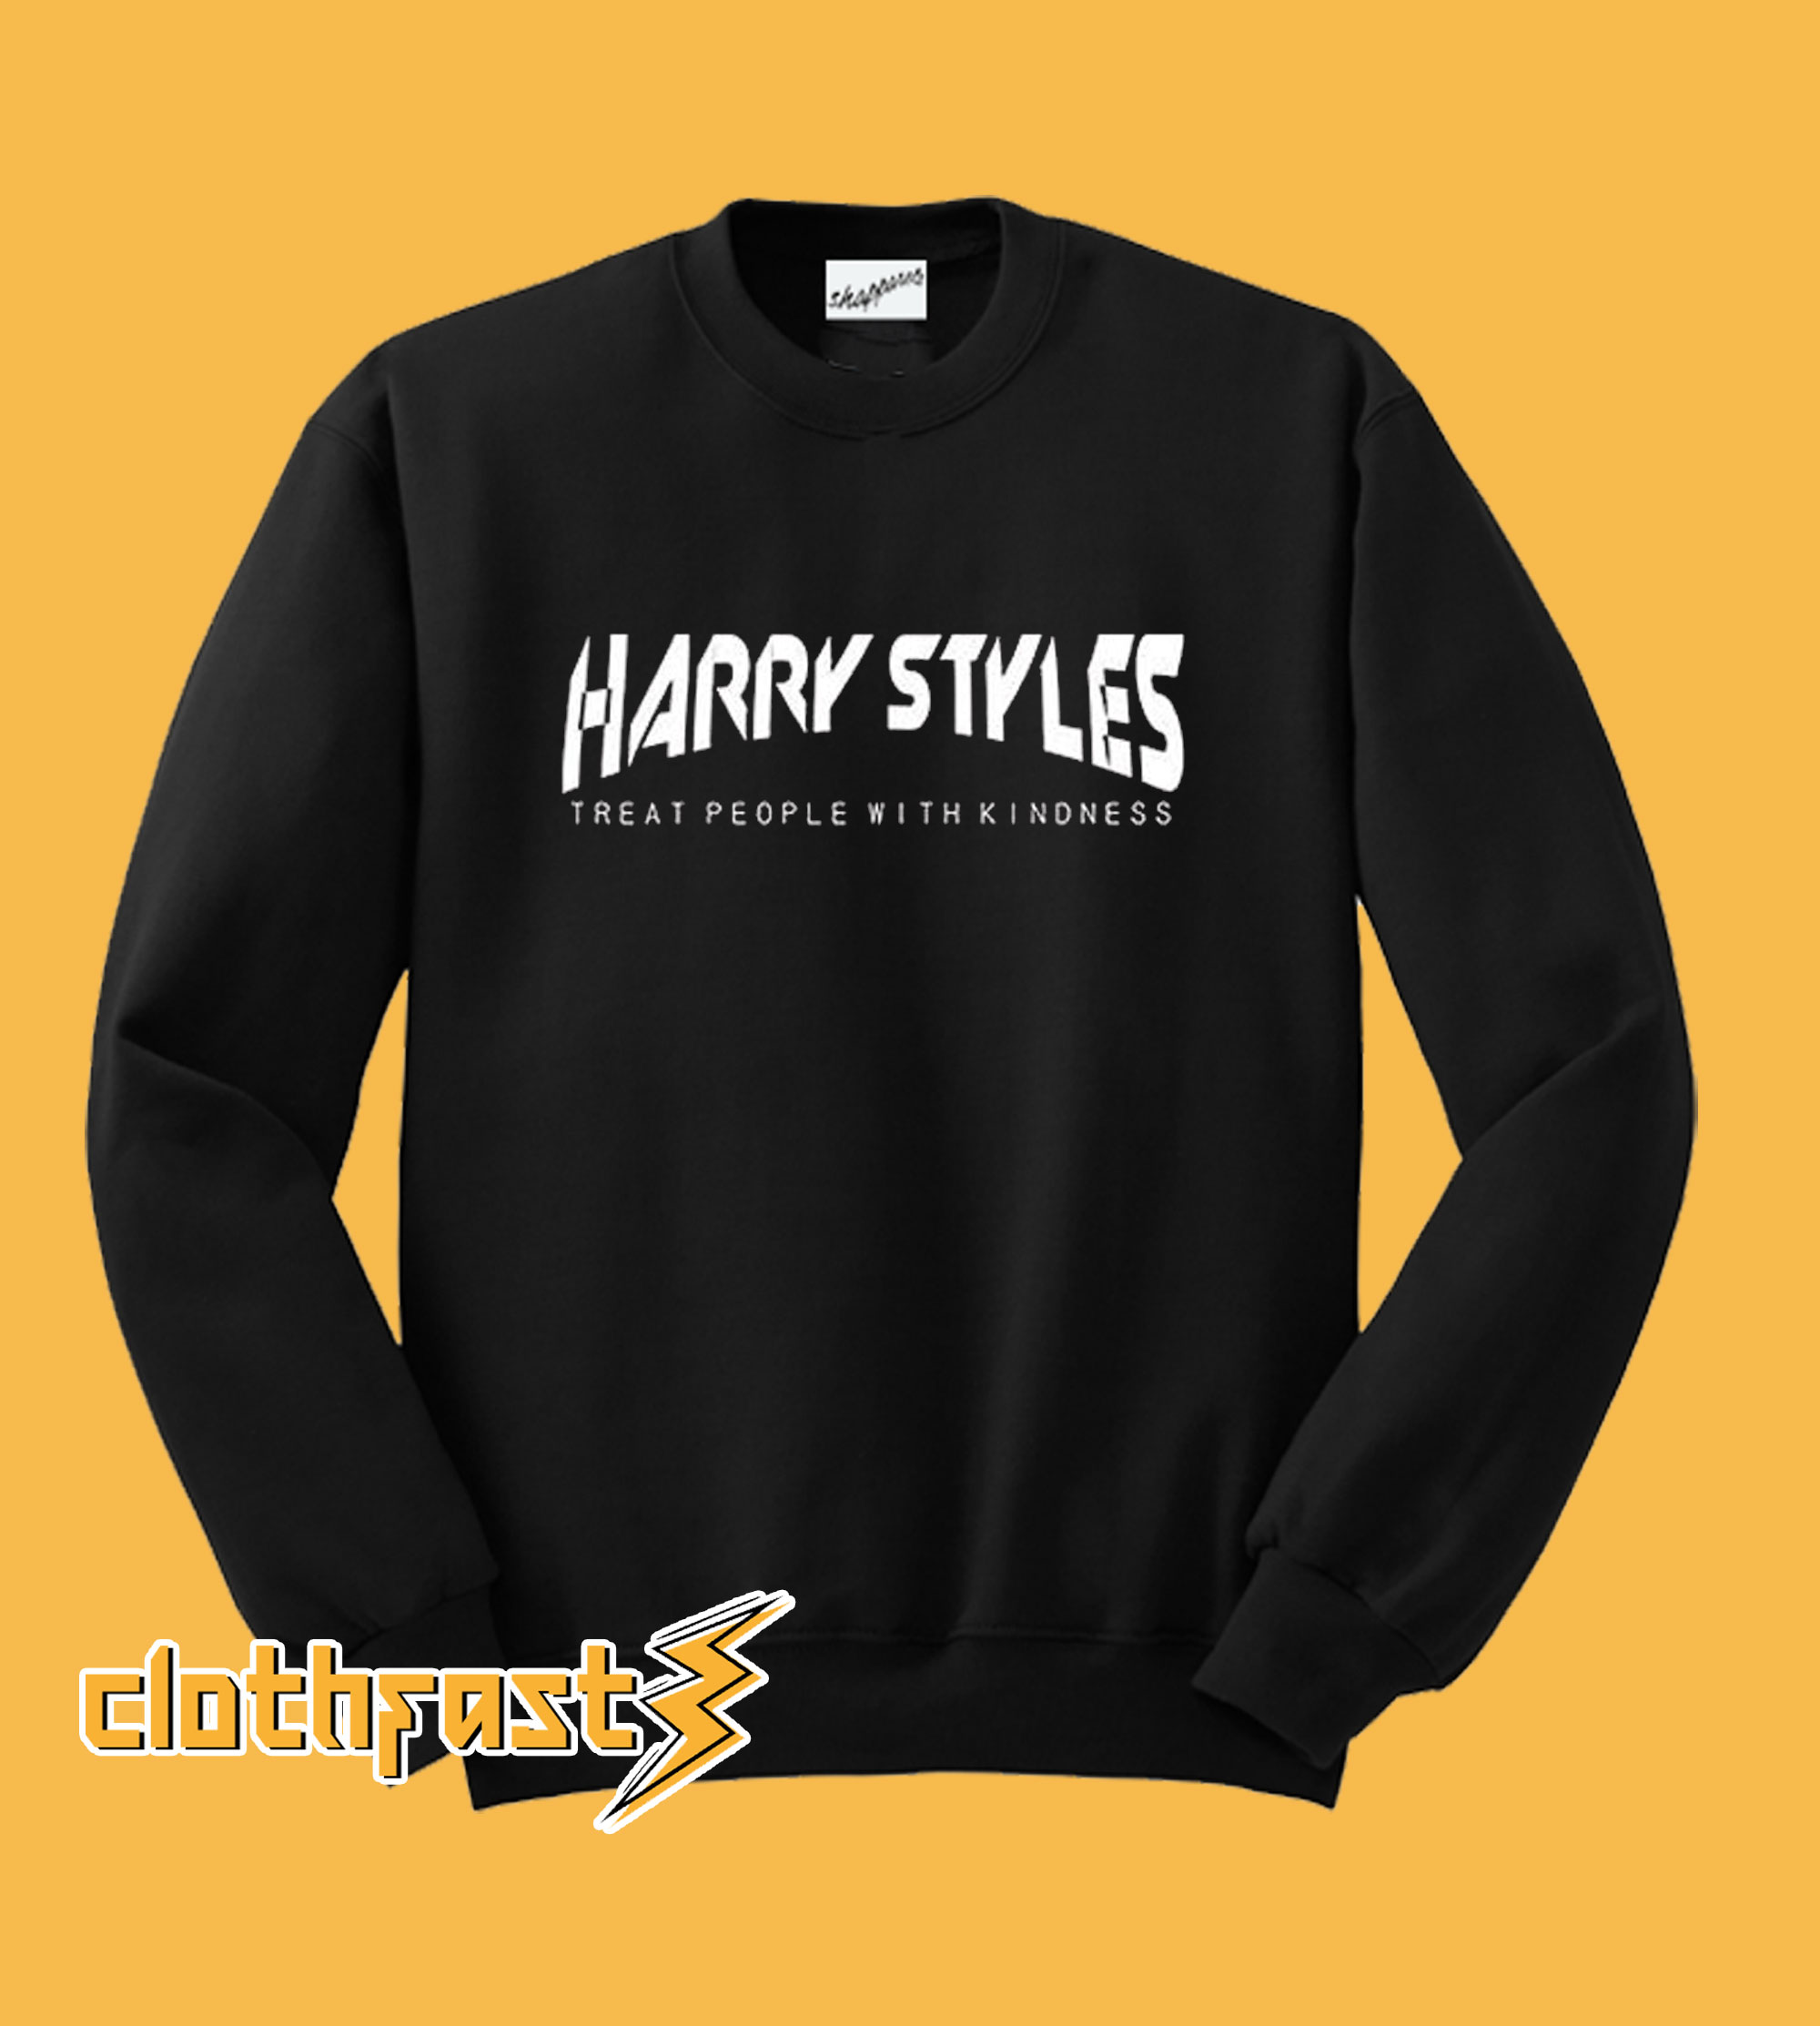 Compre Harry Styles Treat Sweatshirt